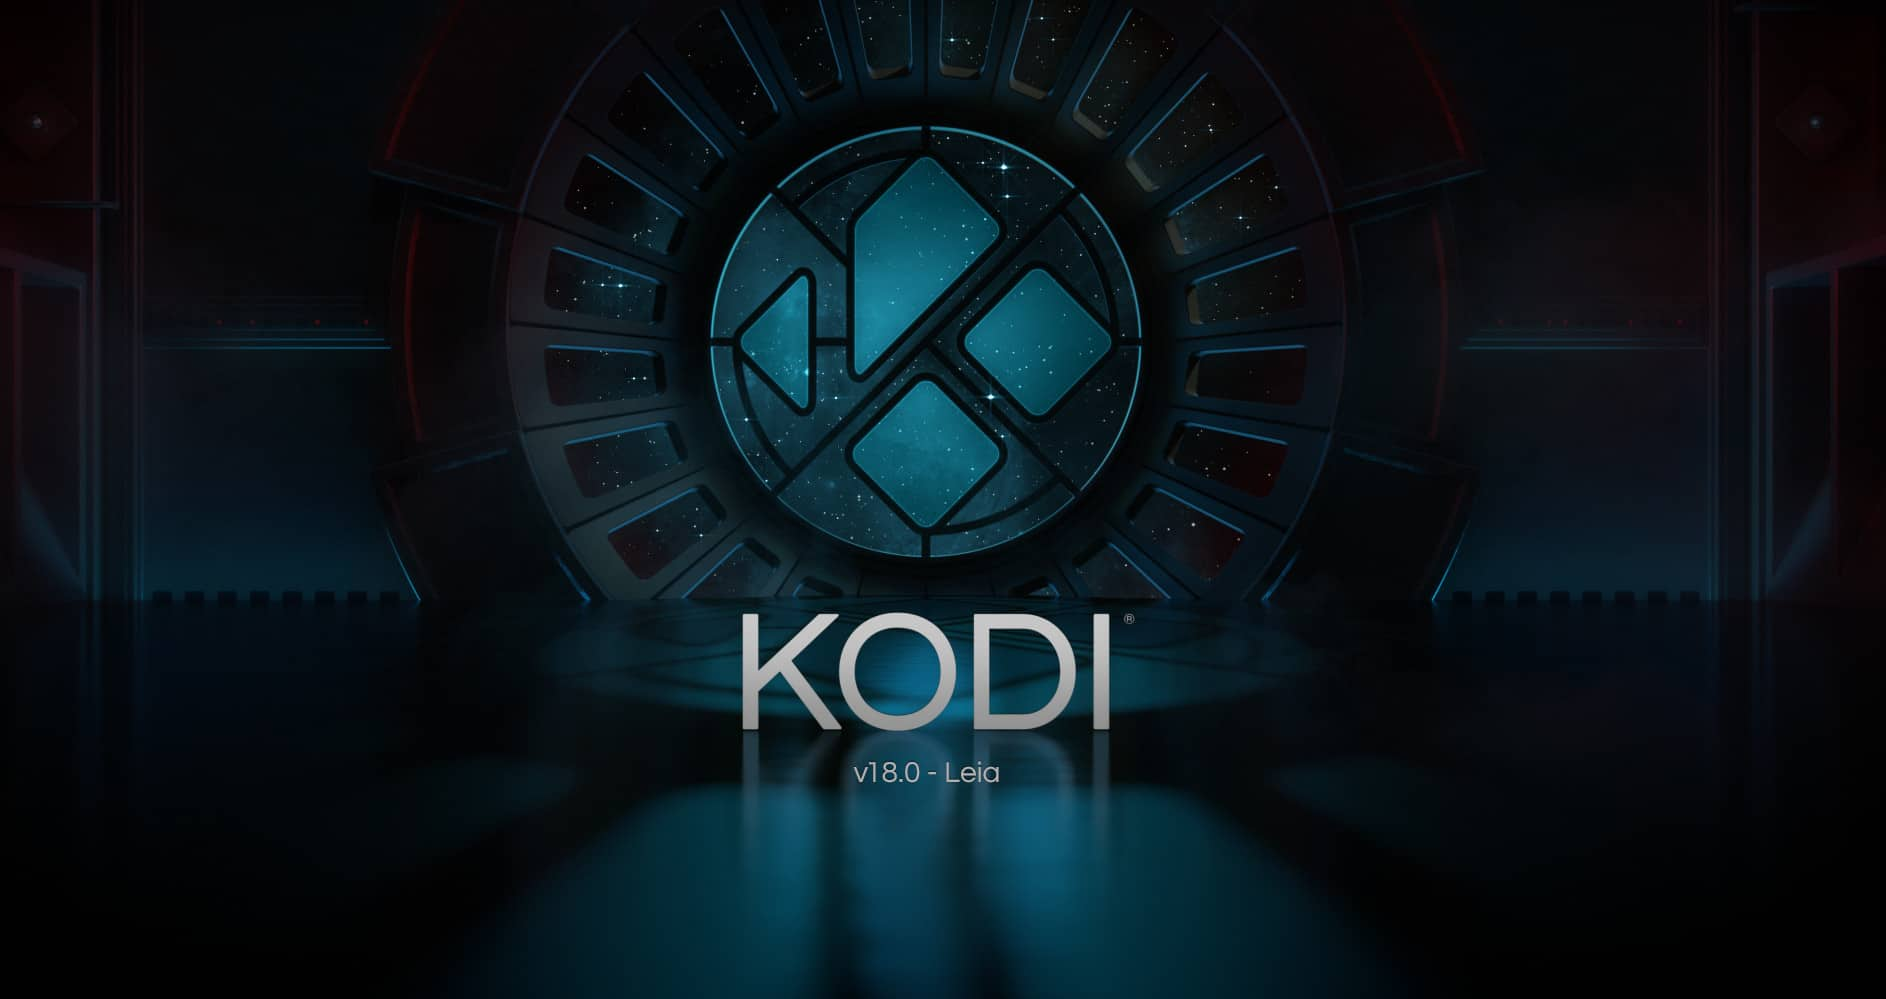 How to download + install Kodi 18 or 17 6 on any device